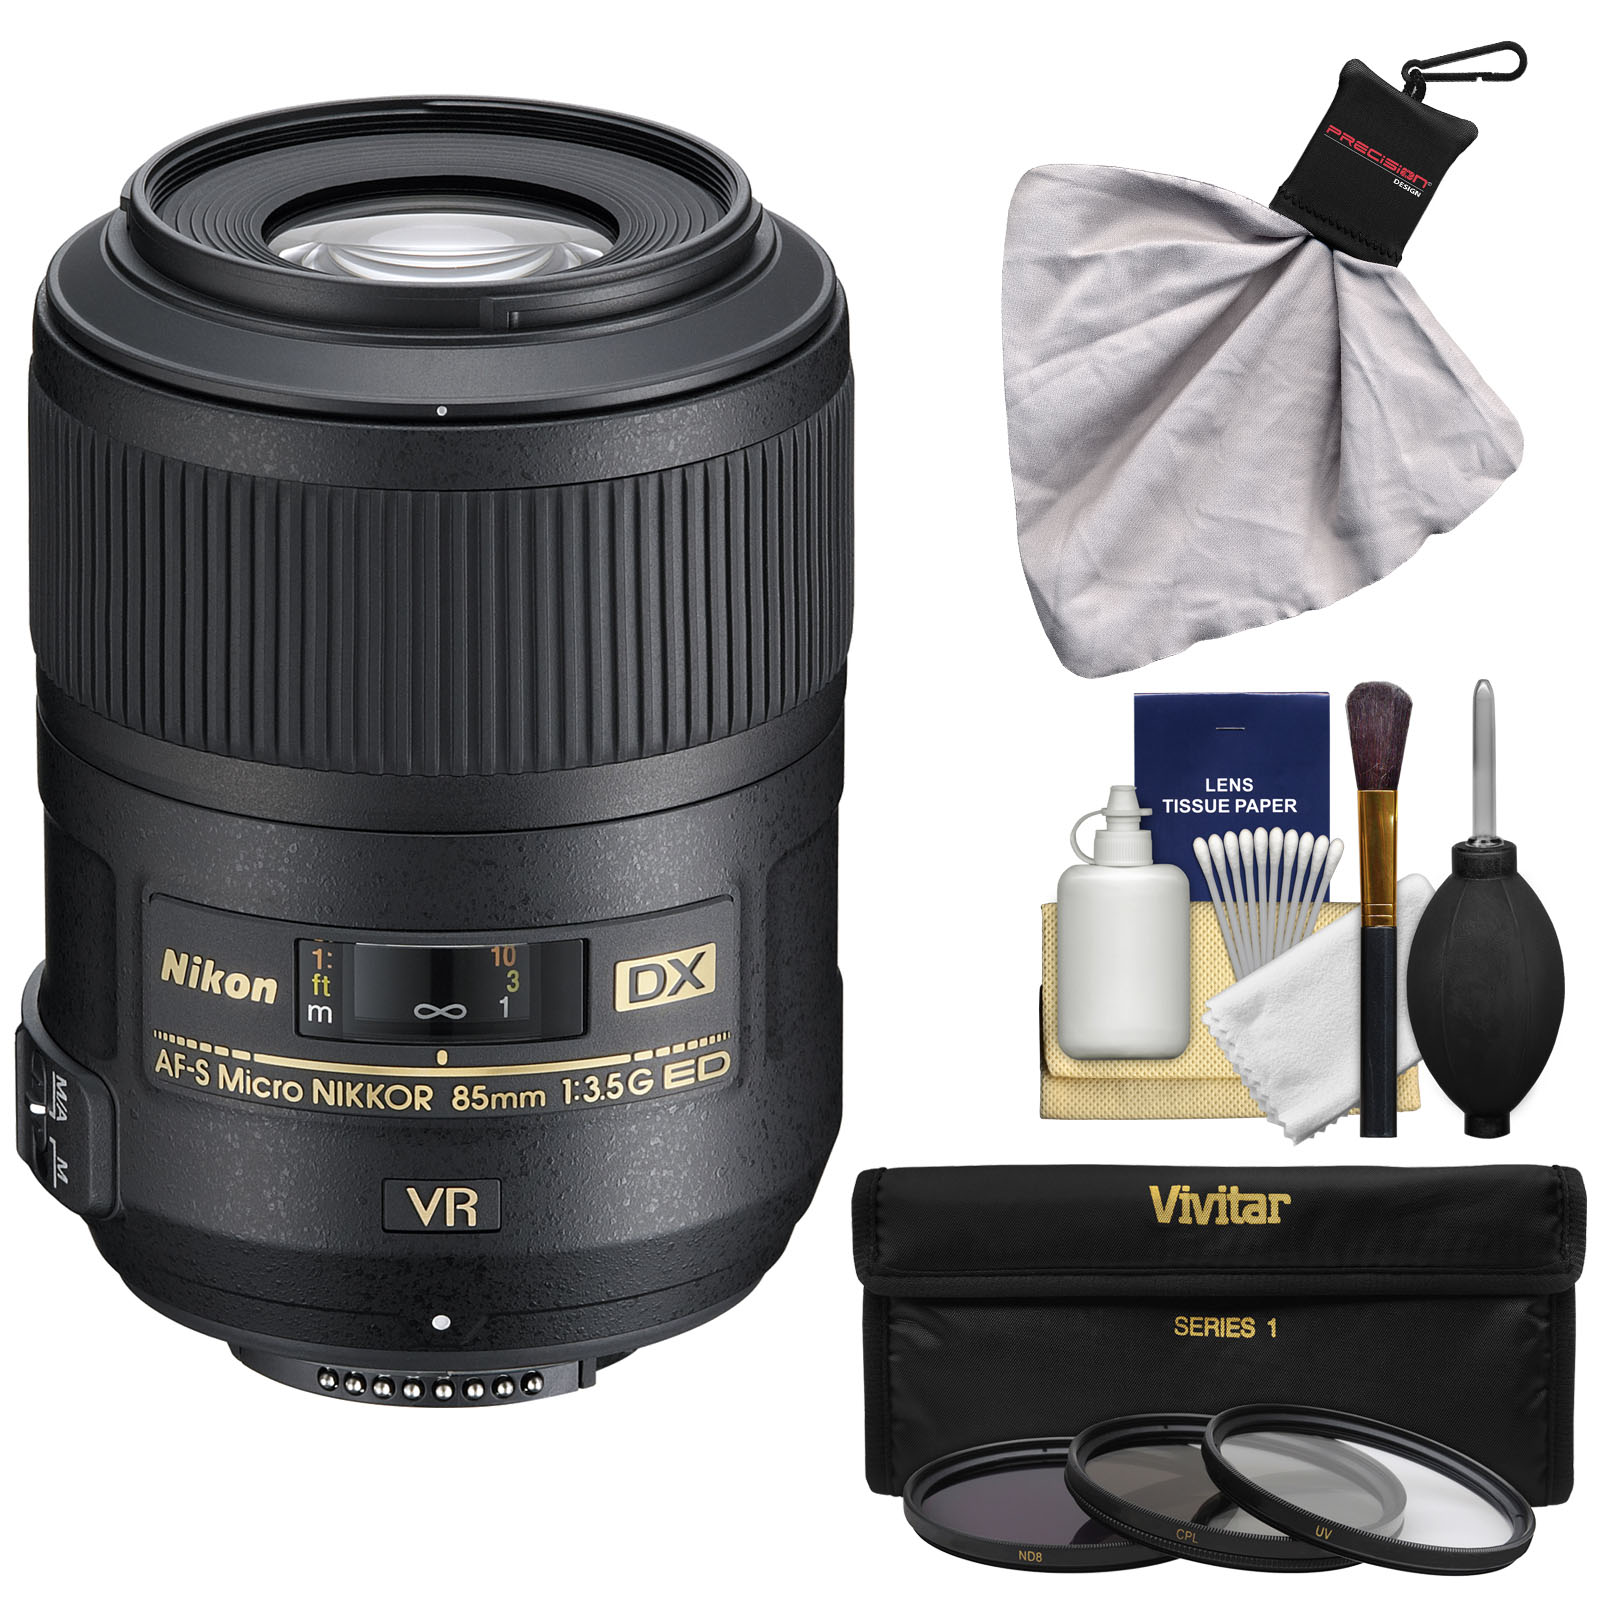 Nikon 85mm f/3.5 G VR AF-S DX ED Micro-Nikkor Lens with 3 UV/CPL/ND8 Filters + Kit for D3100, D3200, D3300, D5100, D5200, D5300, D7000, D7100 DSLR Cameras